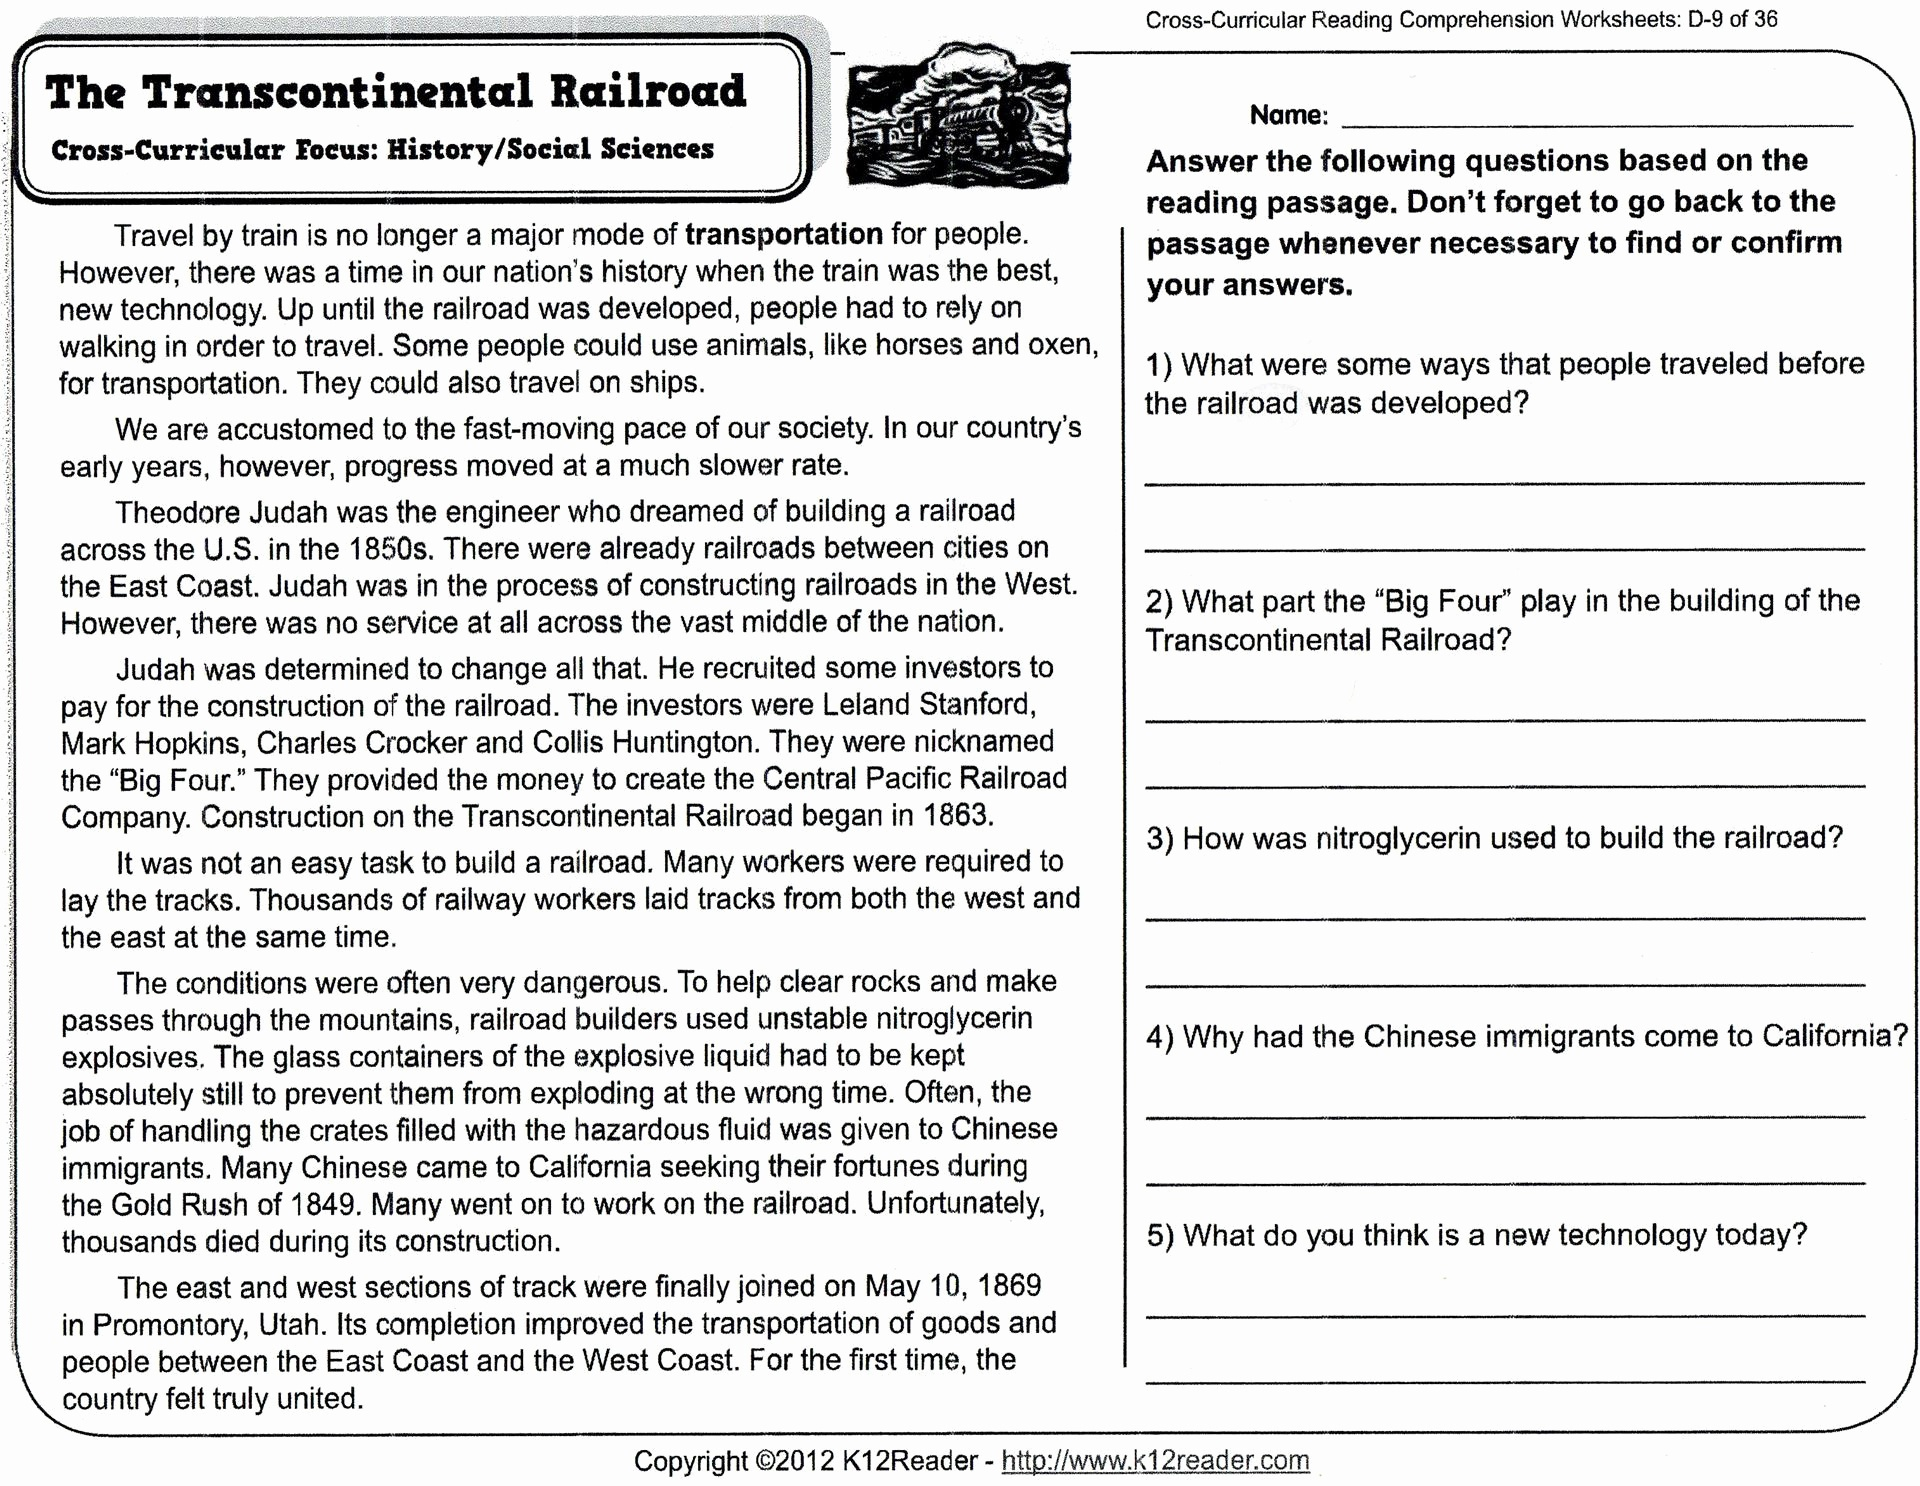 Reading Comprehension Worksheets For 8Th Grade Free Report Templates - Free Printable Reading Comprehension Worksheets Grade 5